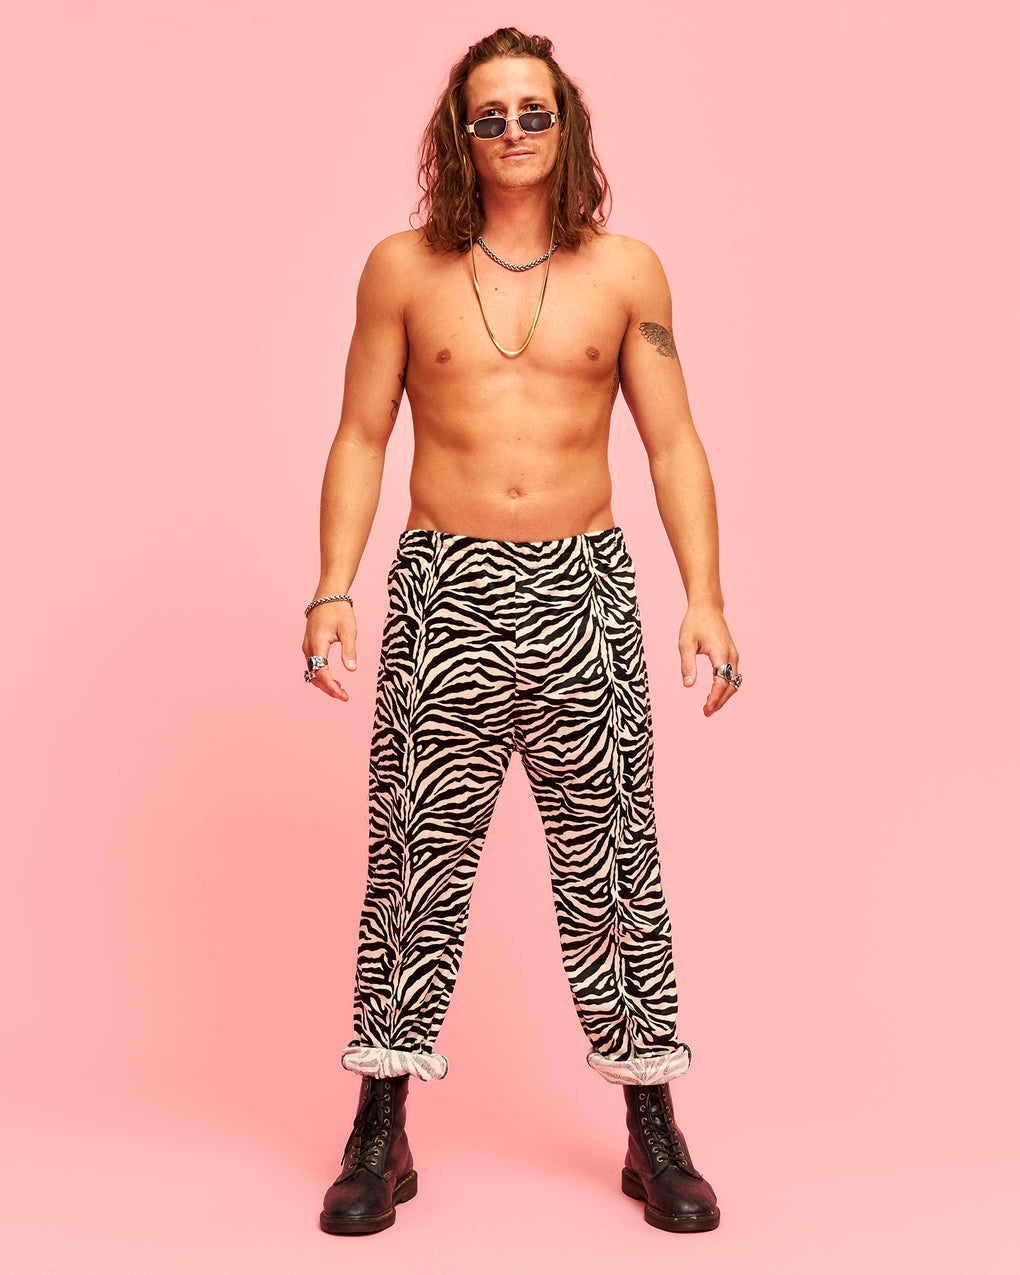 ZEBRA PARTY PANTS - FROTHLYF